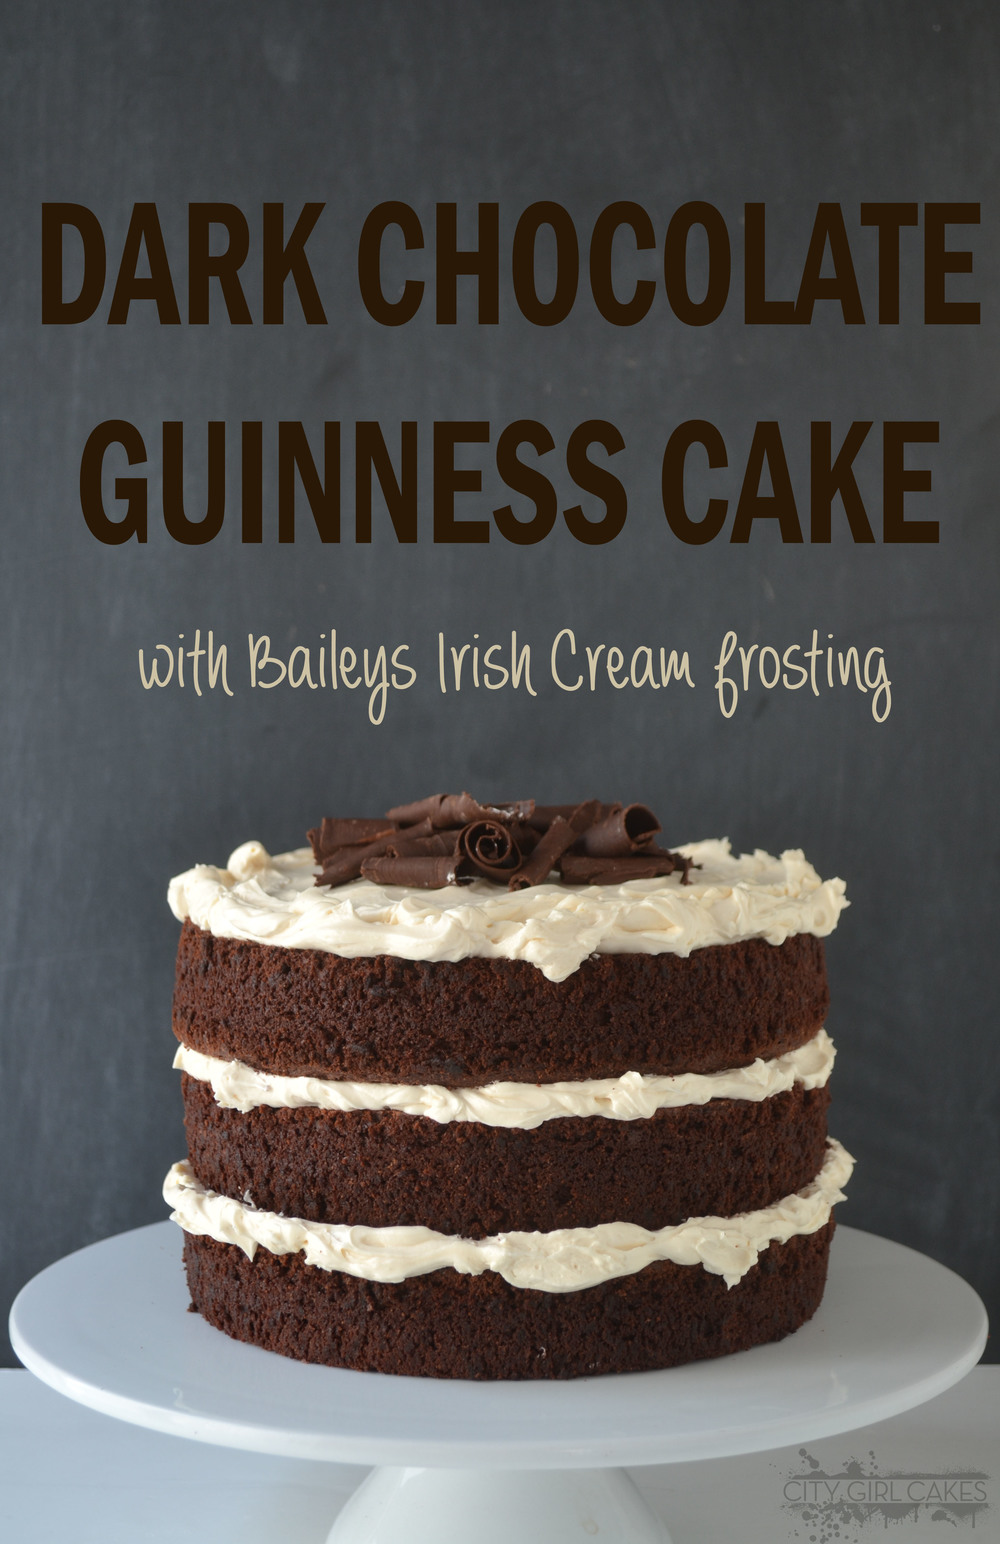 guinness cake copy2.jpg